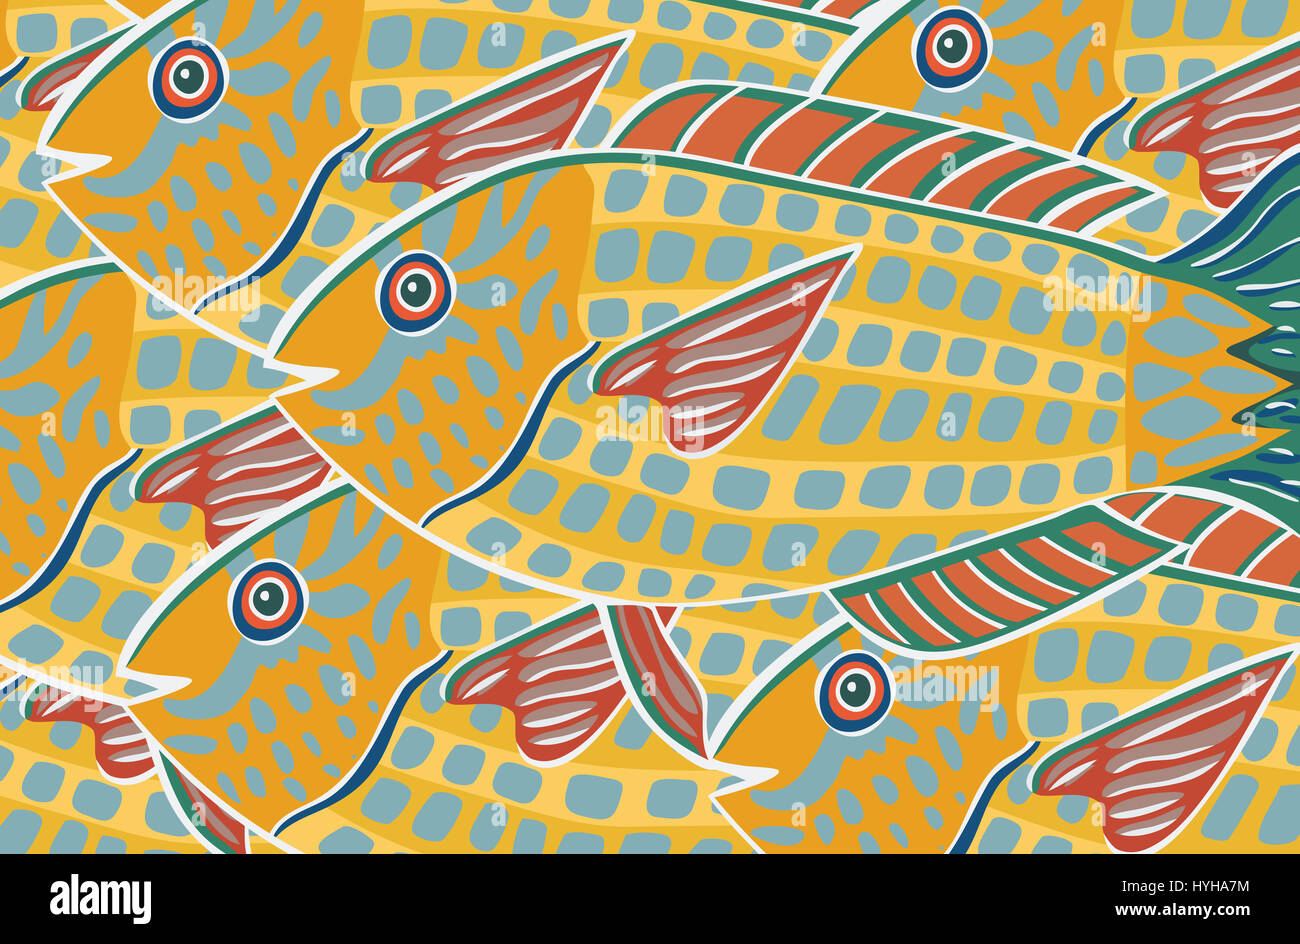 Yellow fish. An illustration about swimming in the same direction. - Stock Image